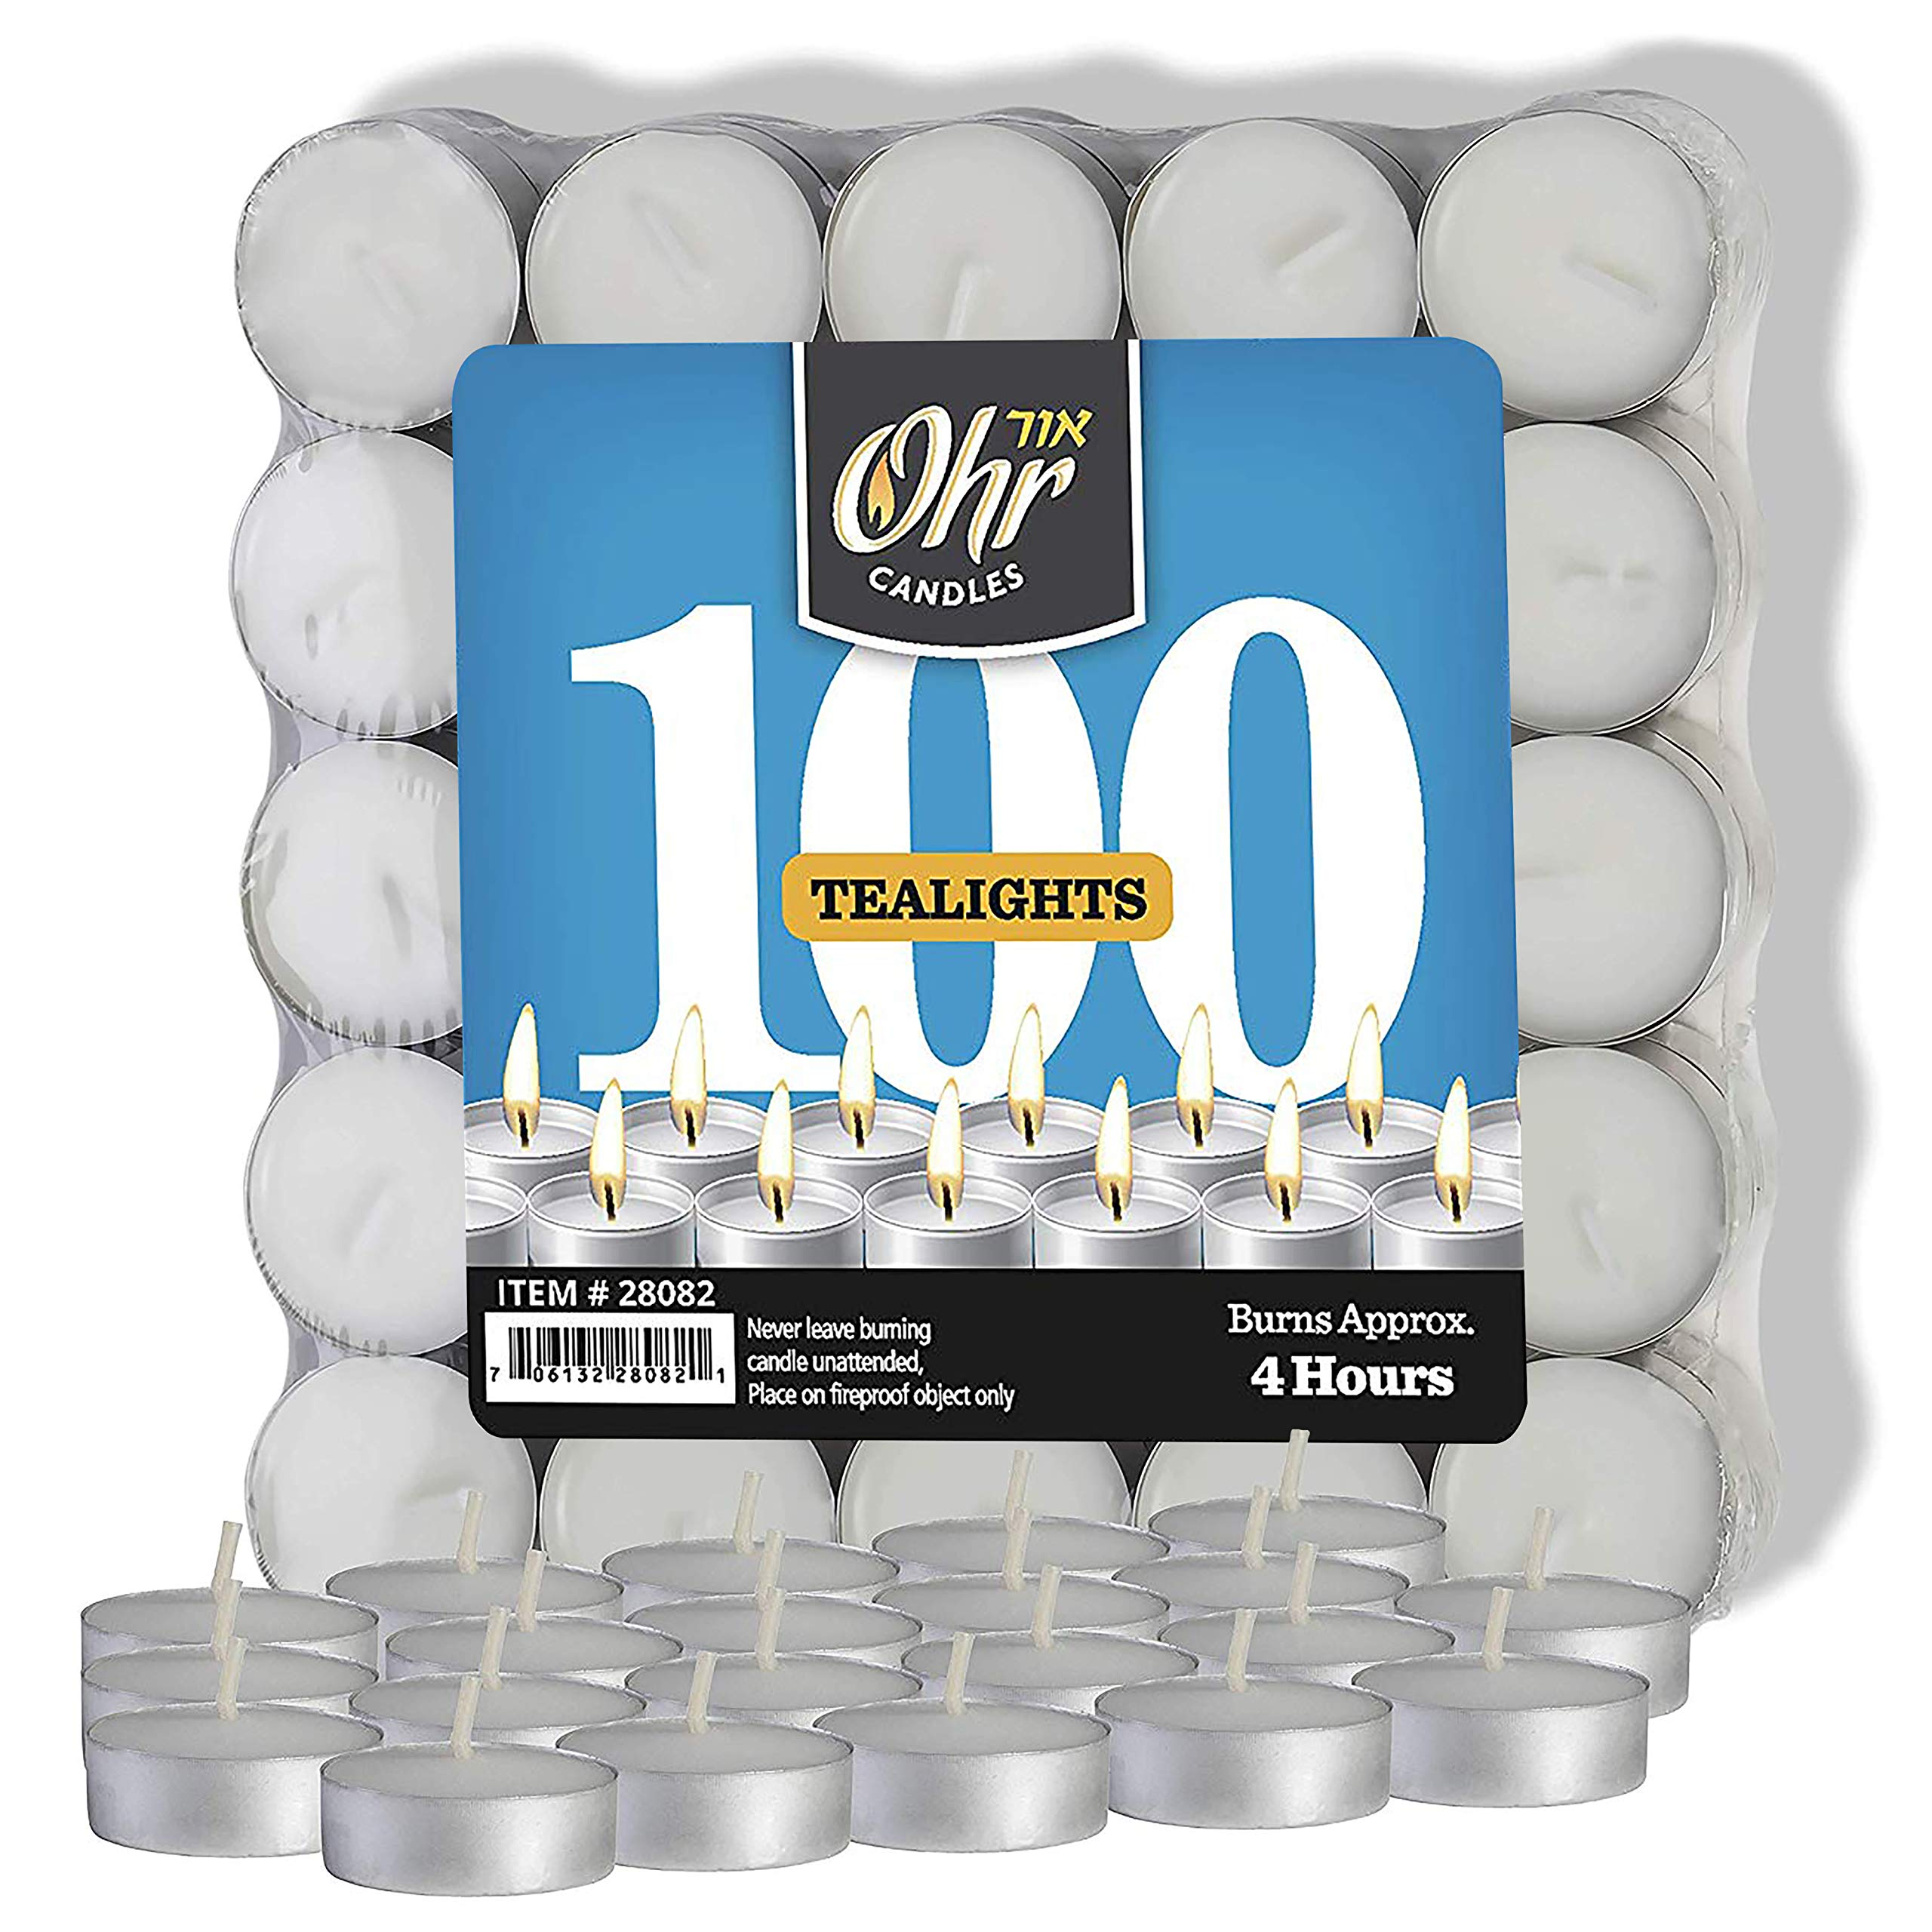 Ohr Tea Light Candles - 100 Bulk Pack - White Unscented Travel, Centerpiece, Decorative Candle - 4 Hour Burn Time - Pressed Wax - By